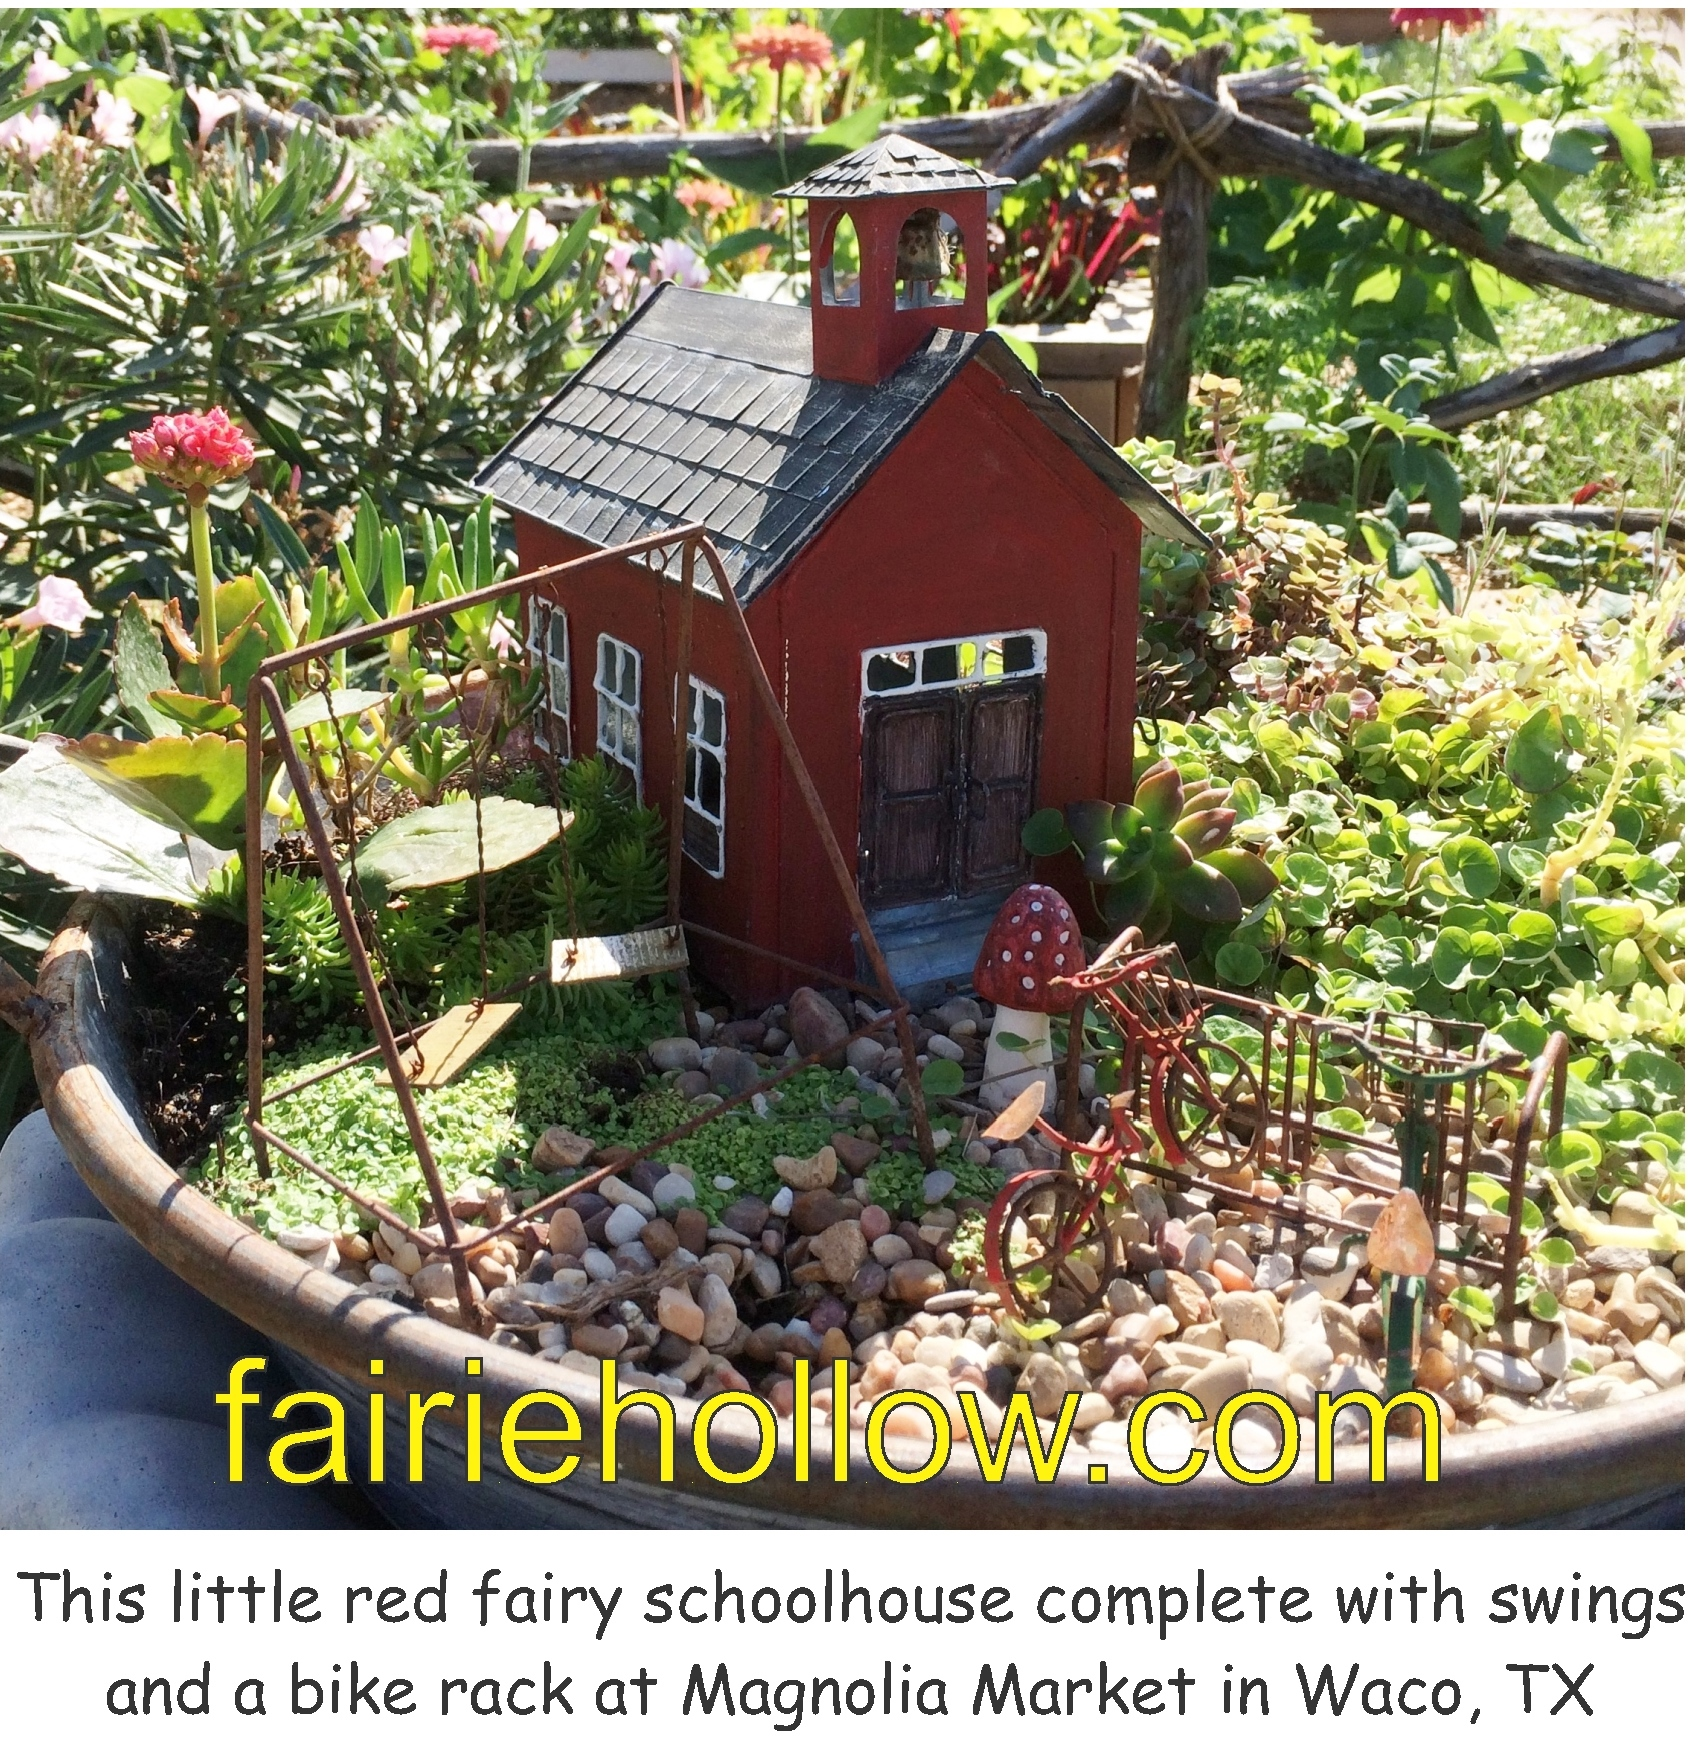 At Magnolia-Market in Waco, Texas, there was this little-red-school-house fairies house| fairiehollow.com